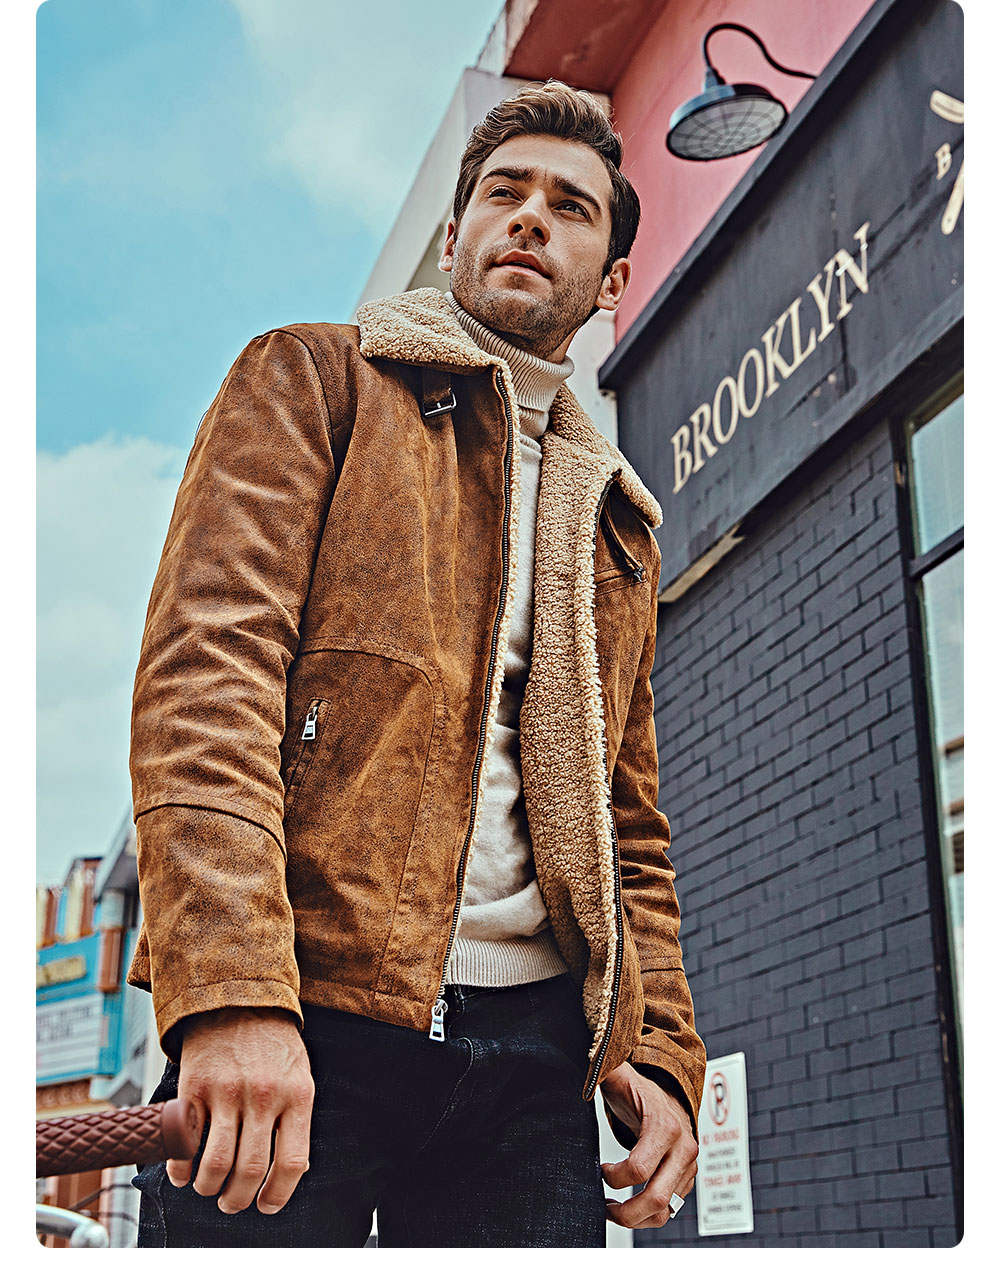 H1b93436de82047ac982b730ed693ecfbJ FLAVOR New Men's Genuine Leather Motorcycle Jacket Pigskin with Faux Shearling Real Leather Jacket Bomber Coat Men